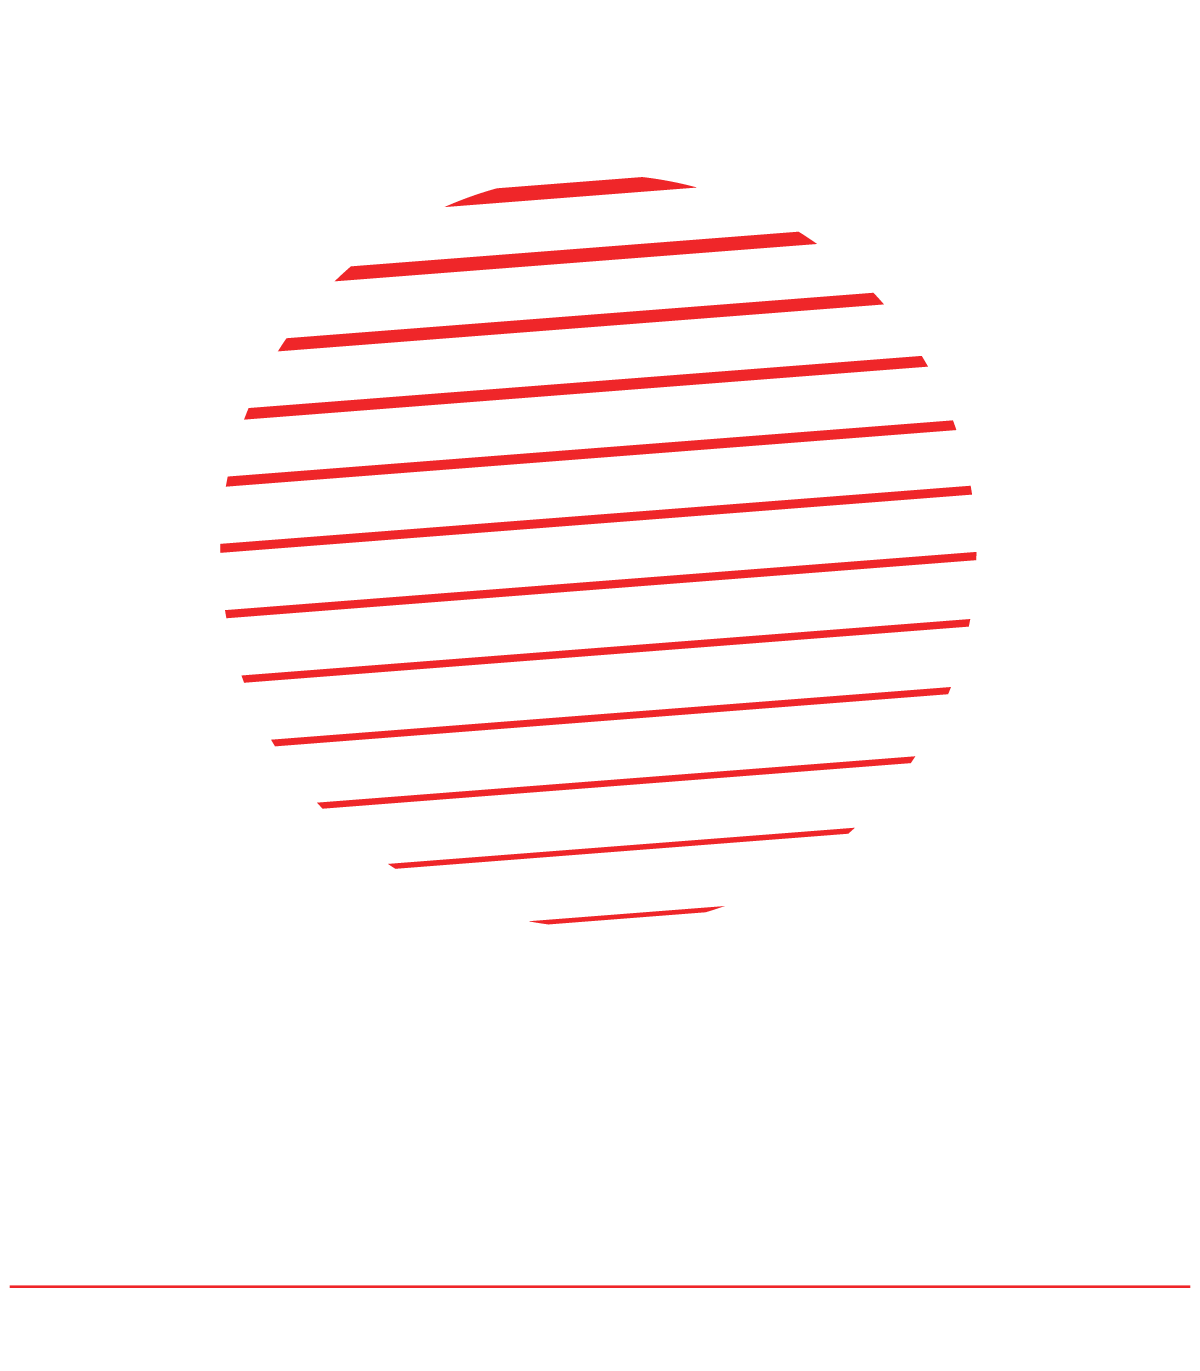 Mothership Logo - Corporate and Commercial Video Production - Leeds London Budapest